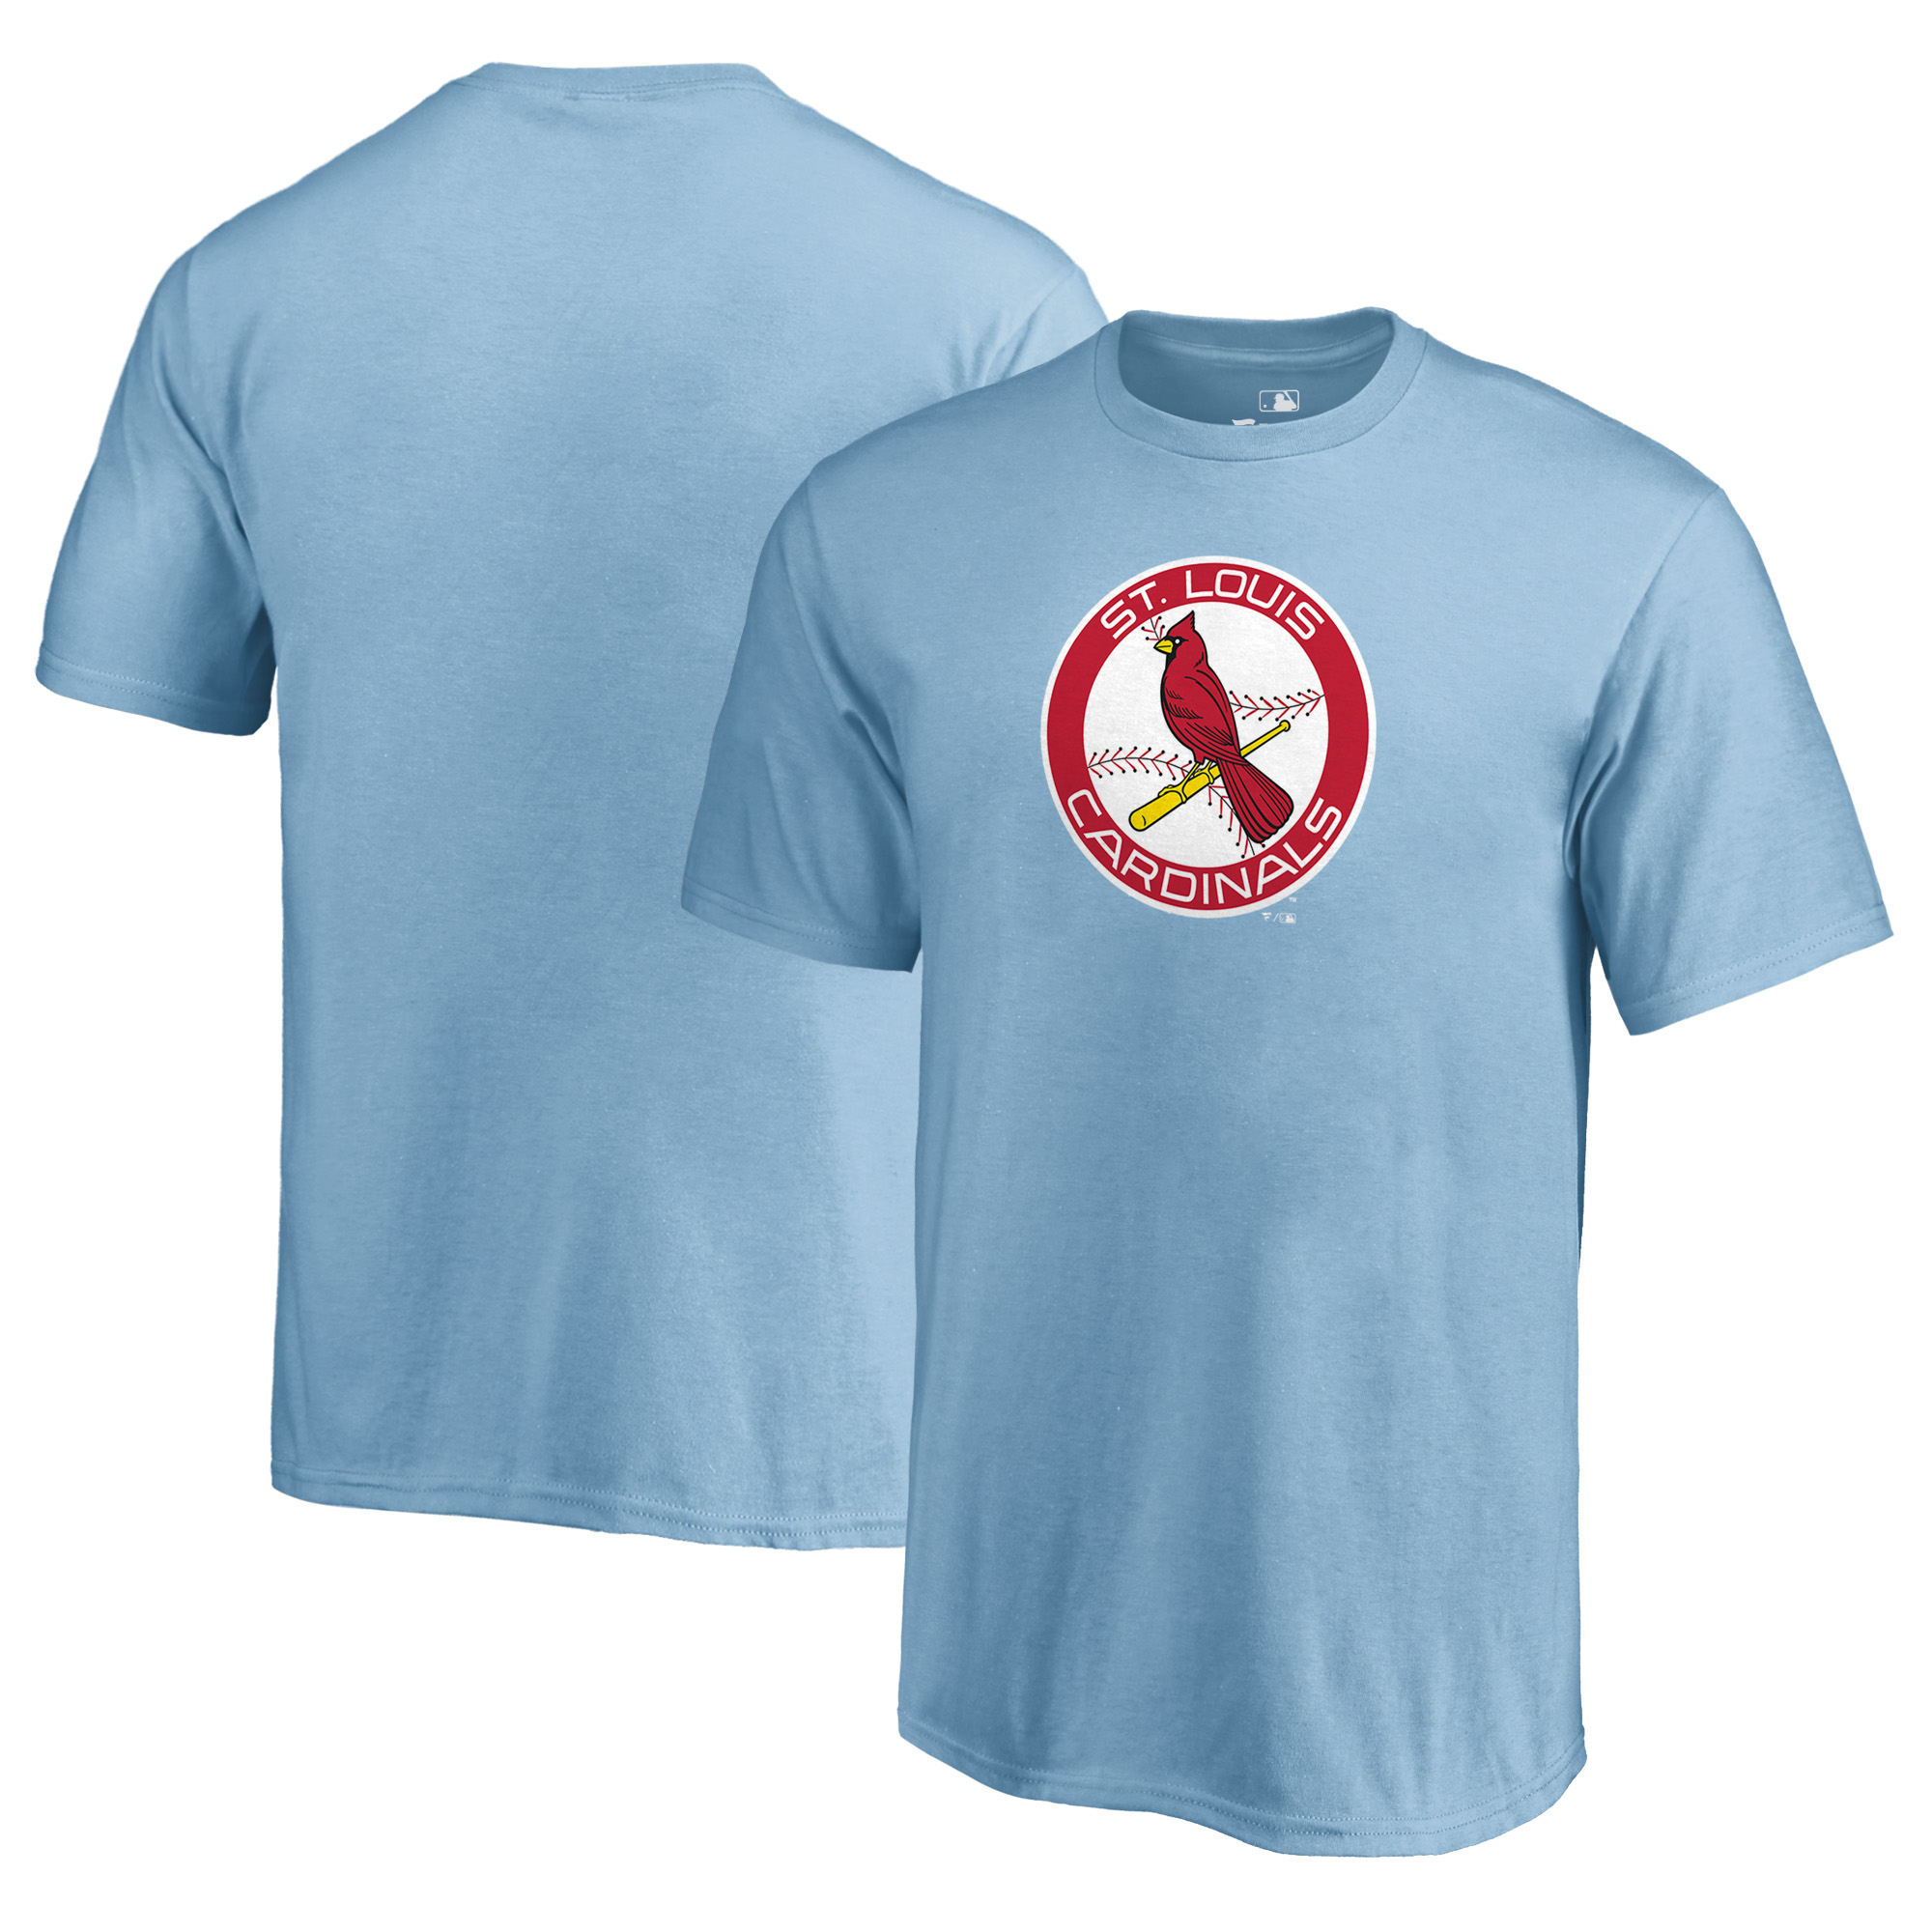 St. Louis Cardinals Fanatics Branded Youth Cooperstown Collection Huntington T-Shirt - Light Blue